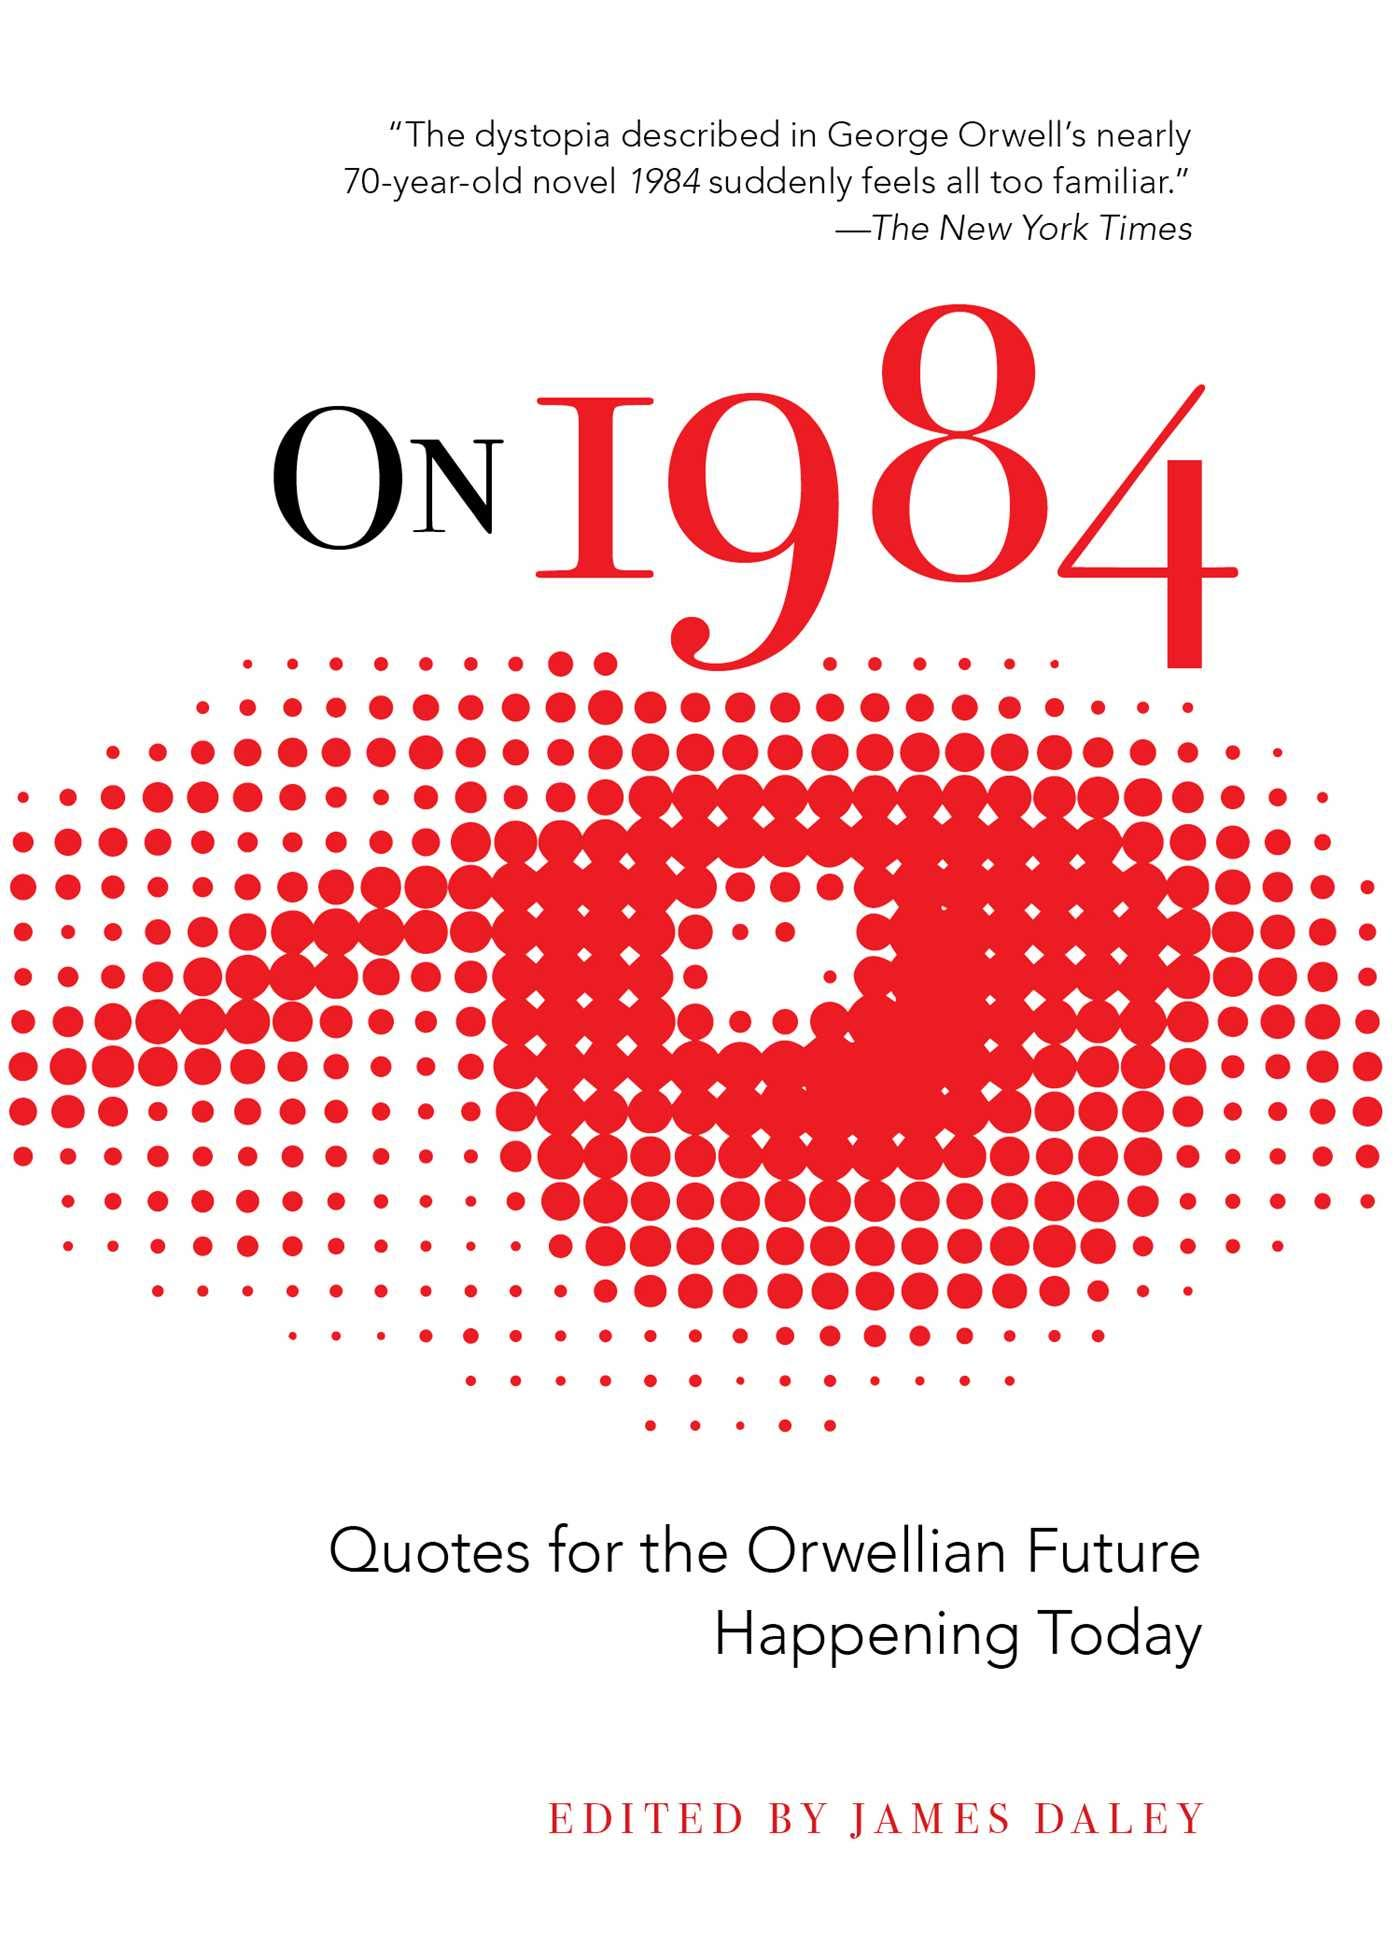 1984 and today